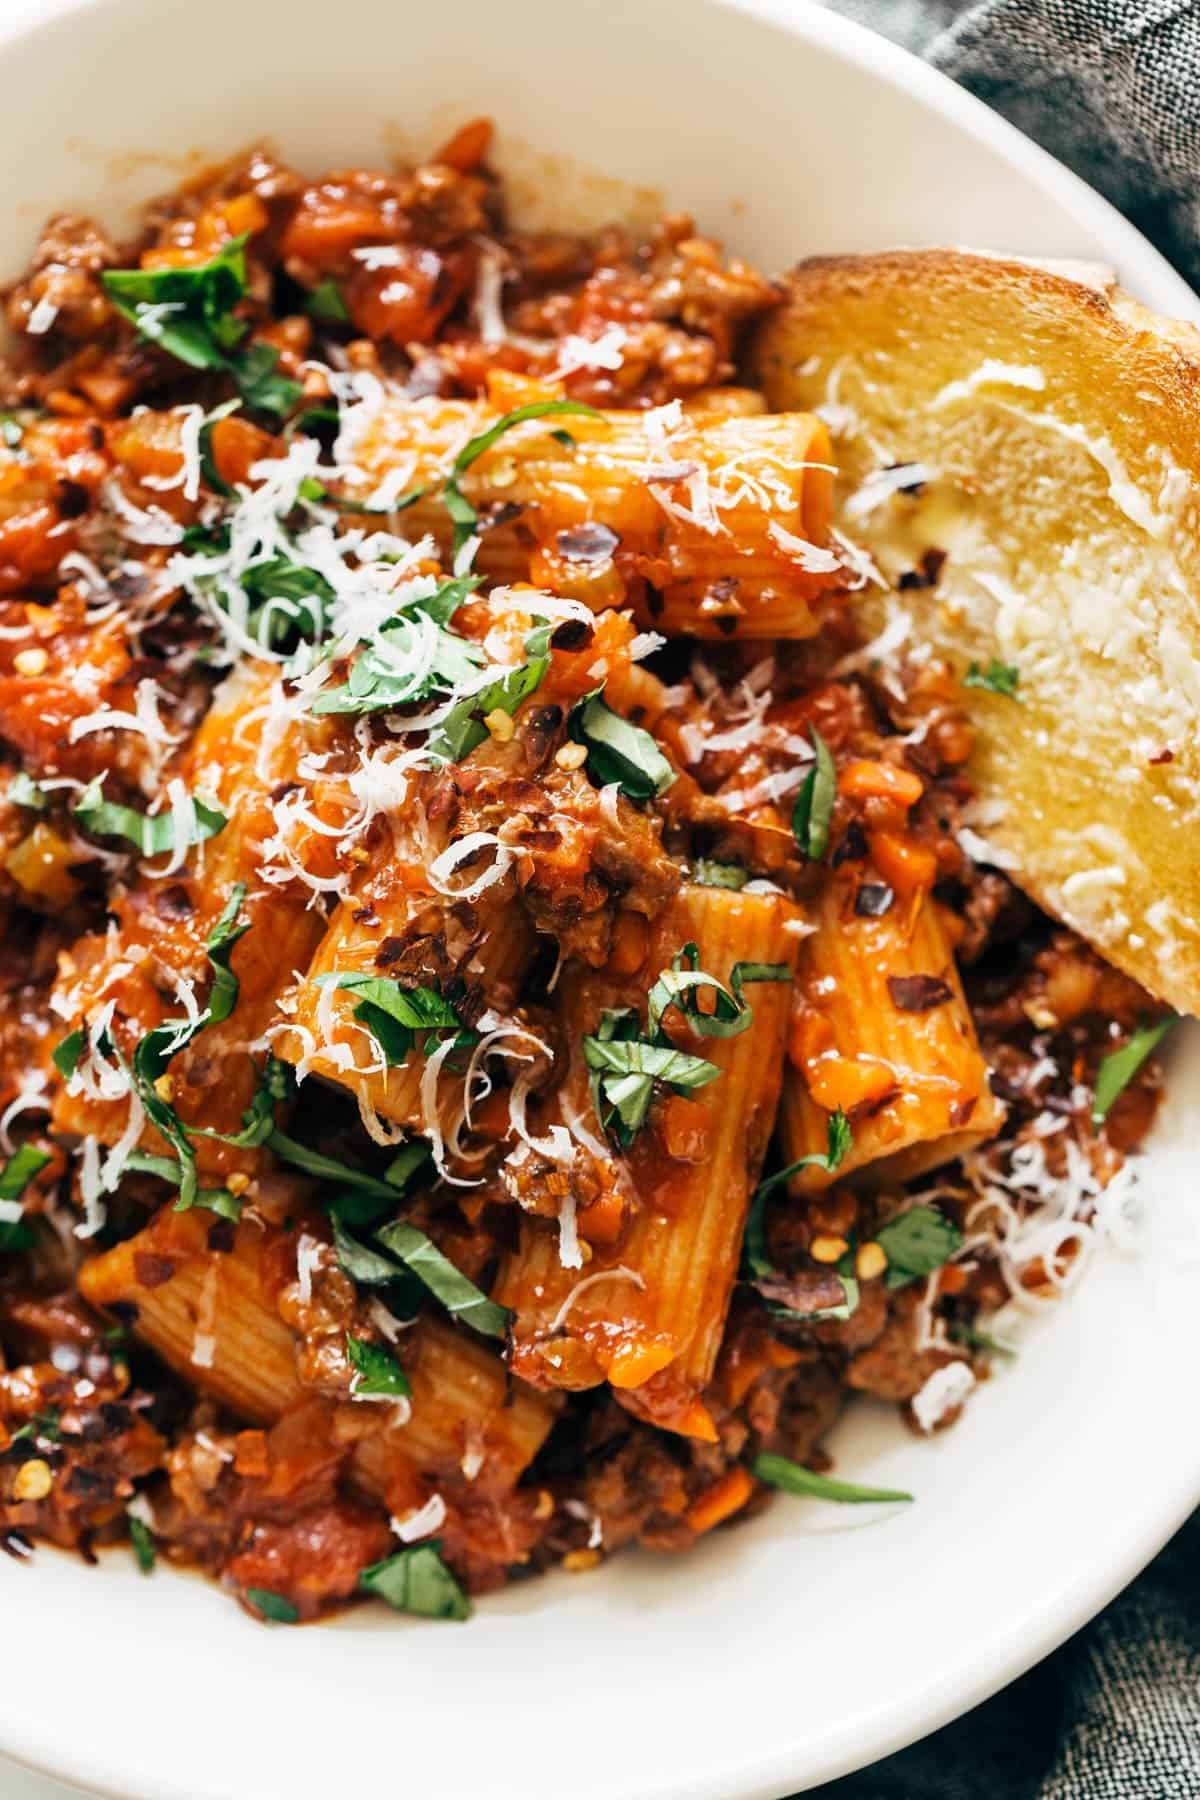 Spicy Sausage Rigatoni in a bowl with bread.